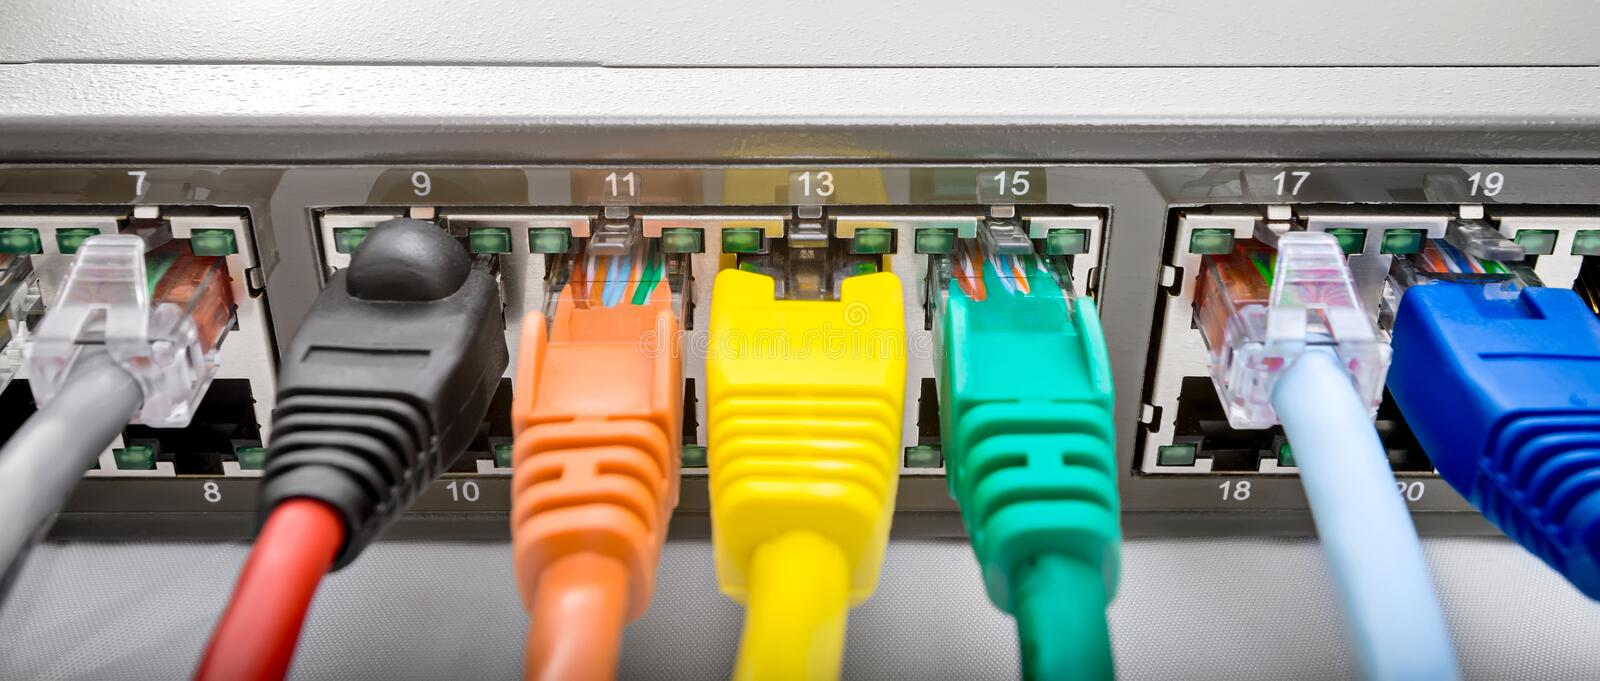 Network Switch with cables. Network ethernet switch with connected cables stock photos